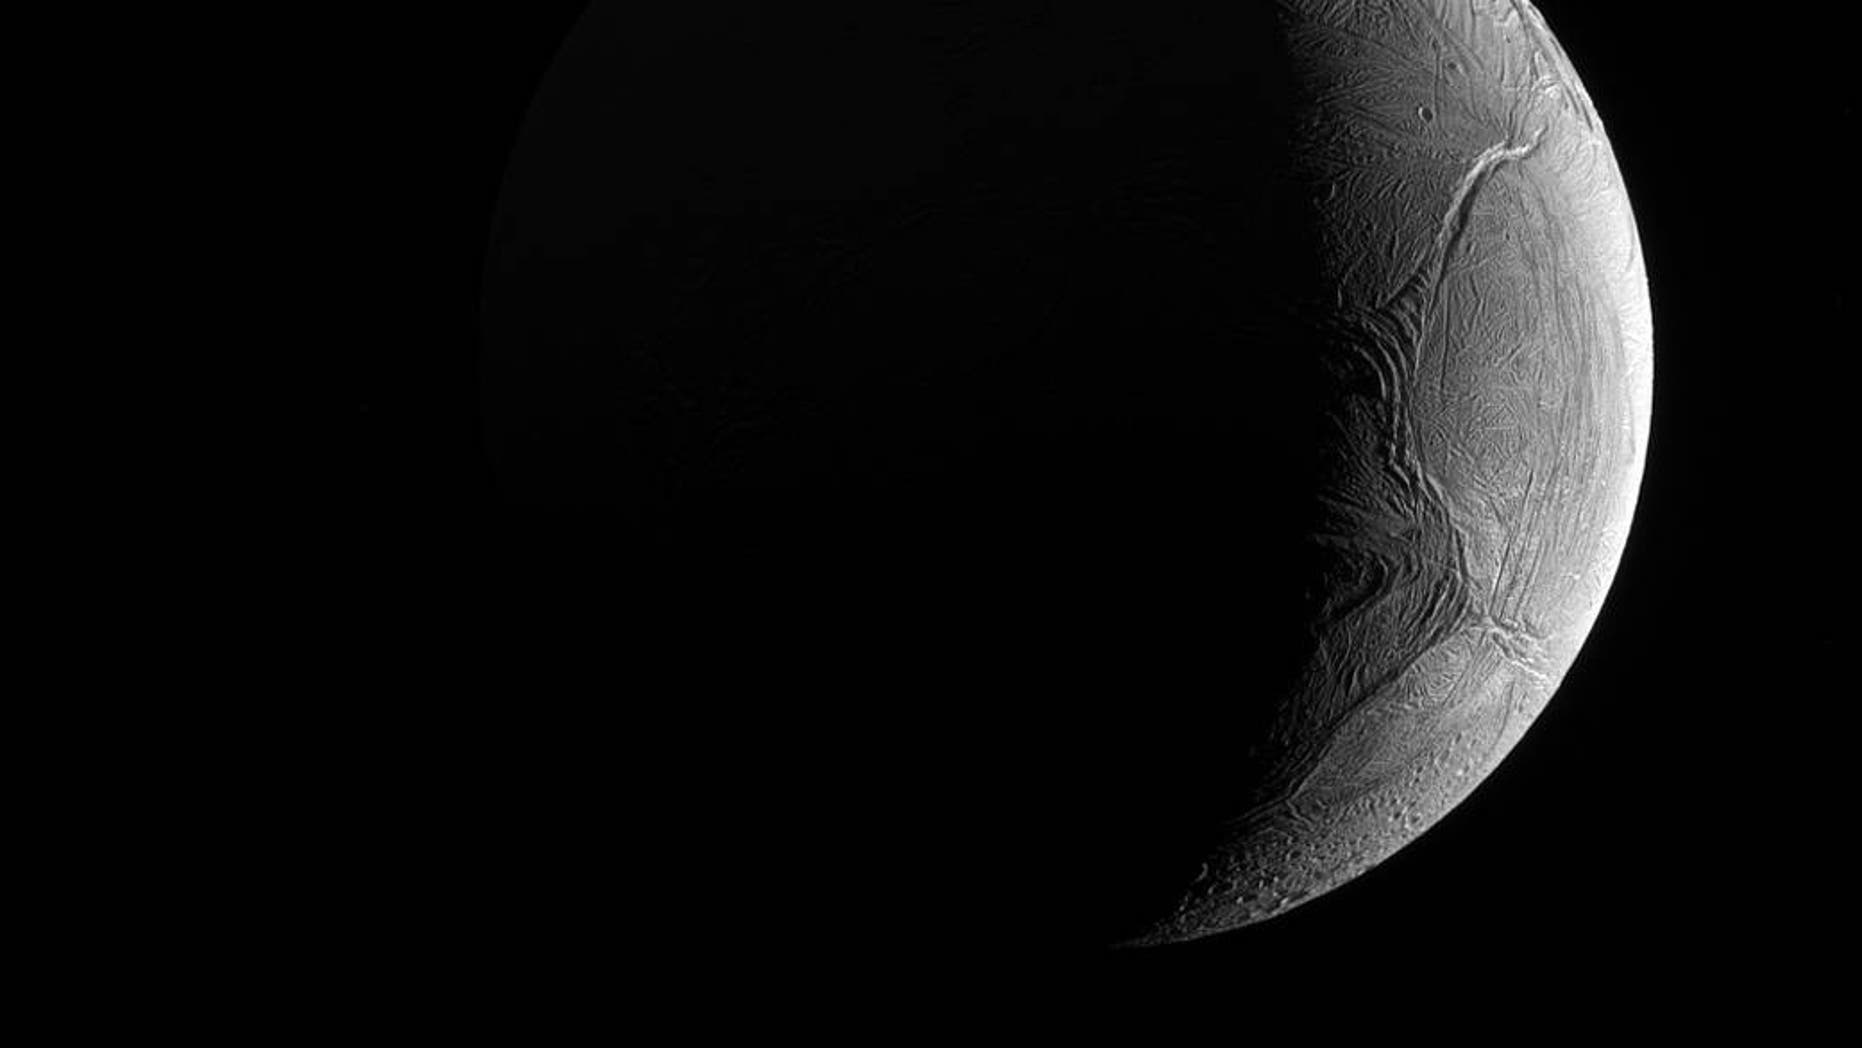 Don't judge a planet by its exterior because this moon of Saturn may just hold the potential for life within its icy shell. The Cassini spacecraft captured this image November 27, 2016 using its narrow-angle camera.